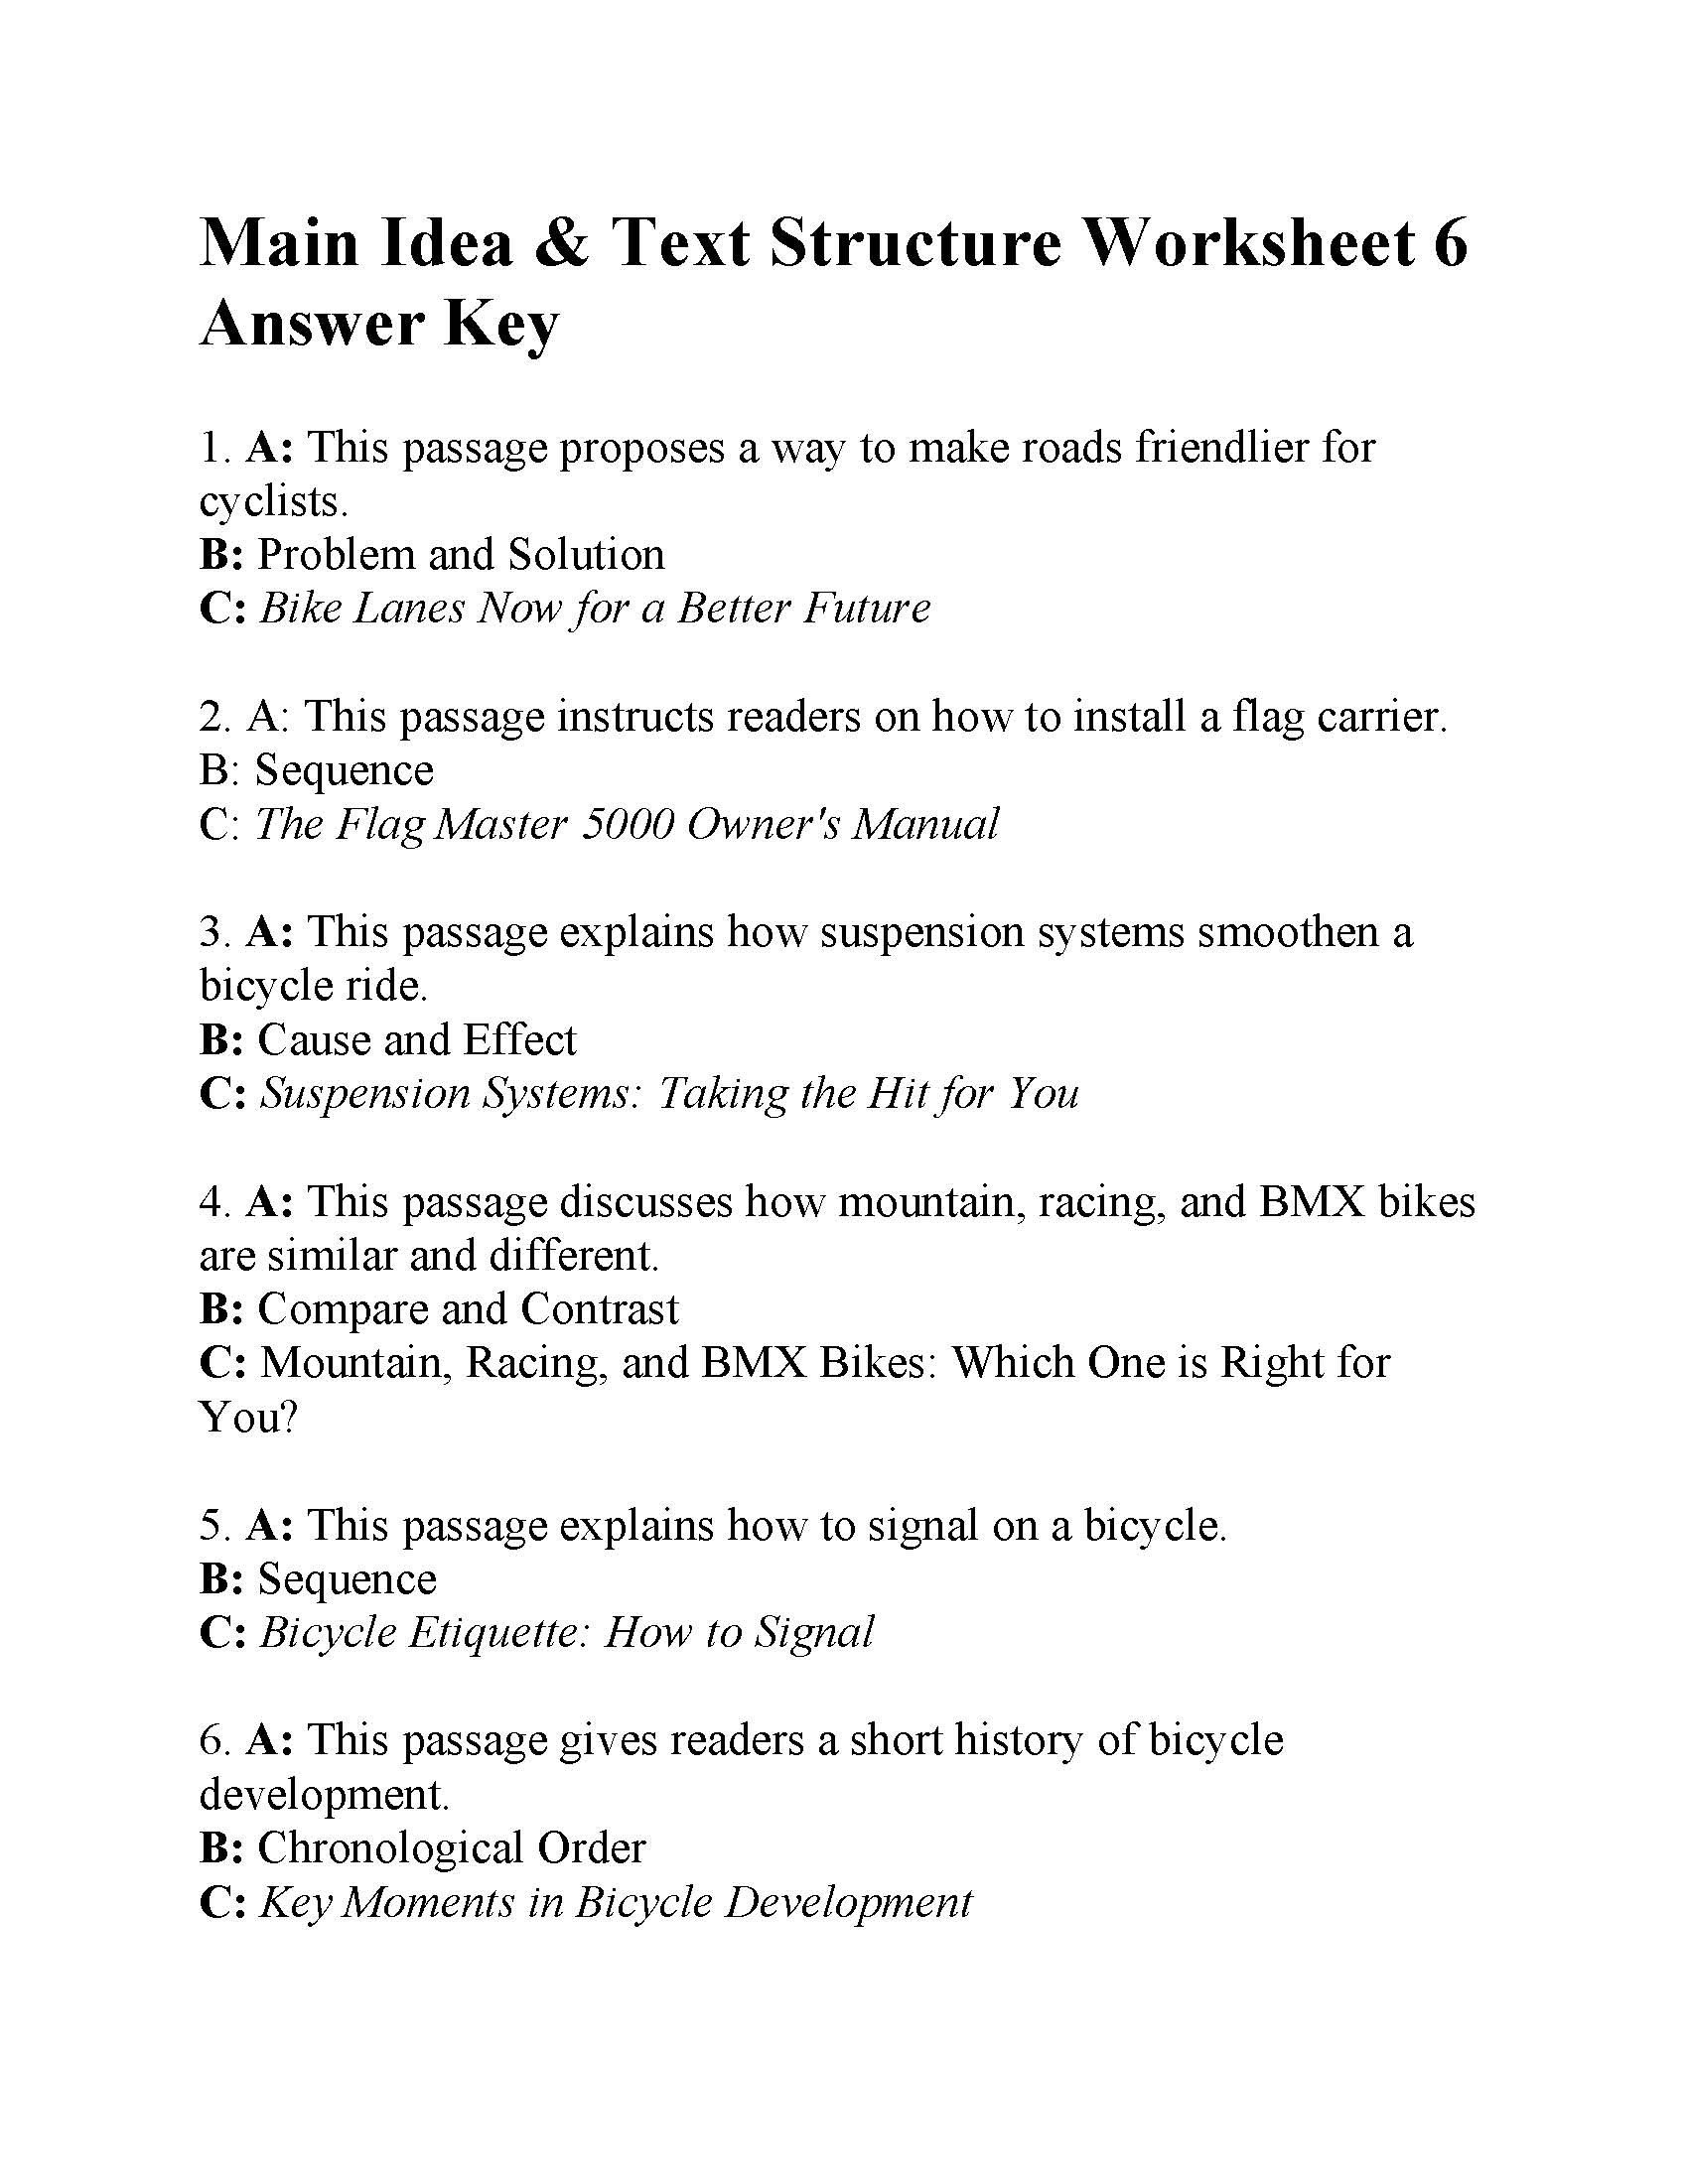 Text Structure Practice Worksheets Main Idea and Text Structure Worksheet 6